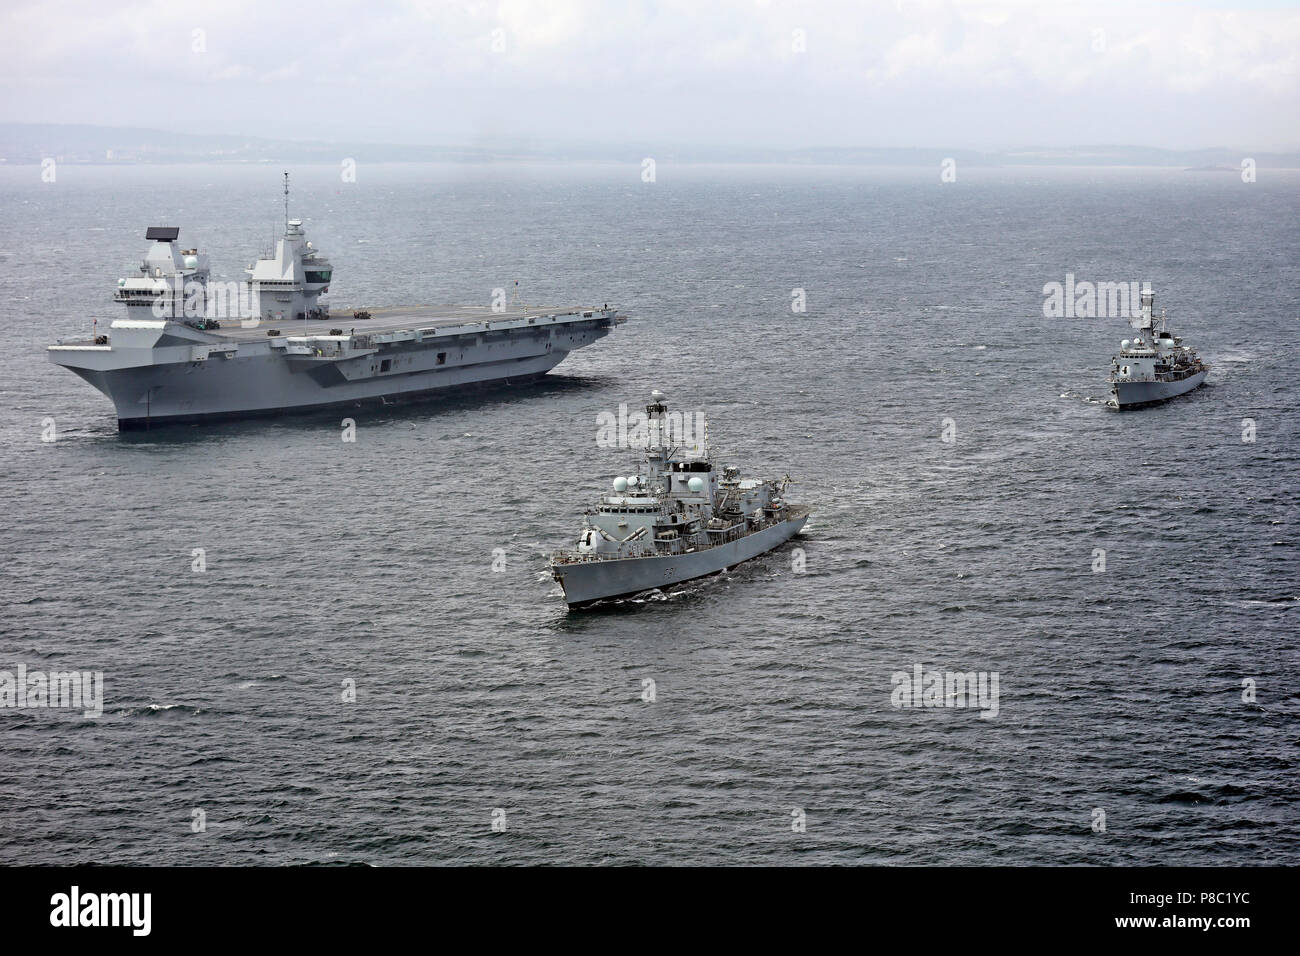 HMS QUEEN ELIZABETH (RO8) aircraft carrier at sea on 28 June 2017 accompanied by  Type 23 frigatesHMS Sutherland (front) and HMS Iron Duke. Courtesy UK Ministry of Defence photo 45162784 - Stock Image